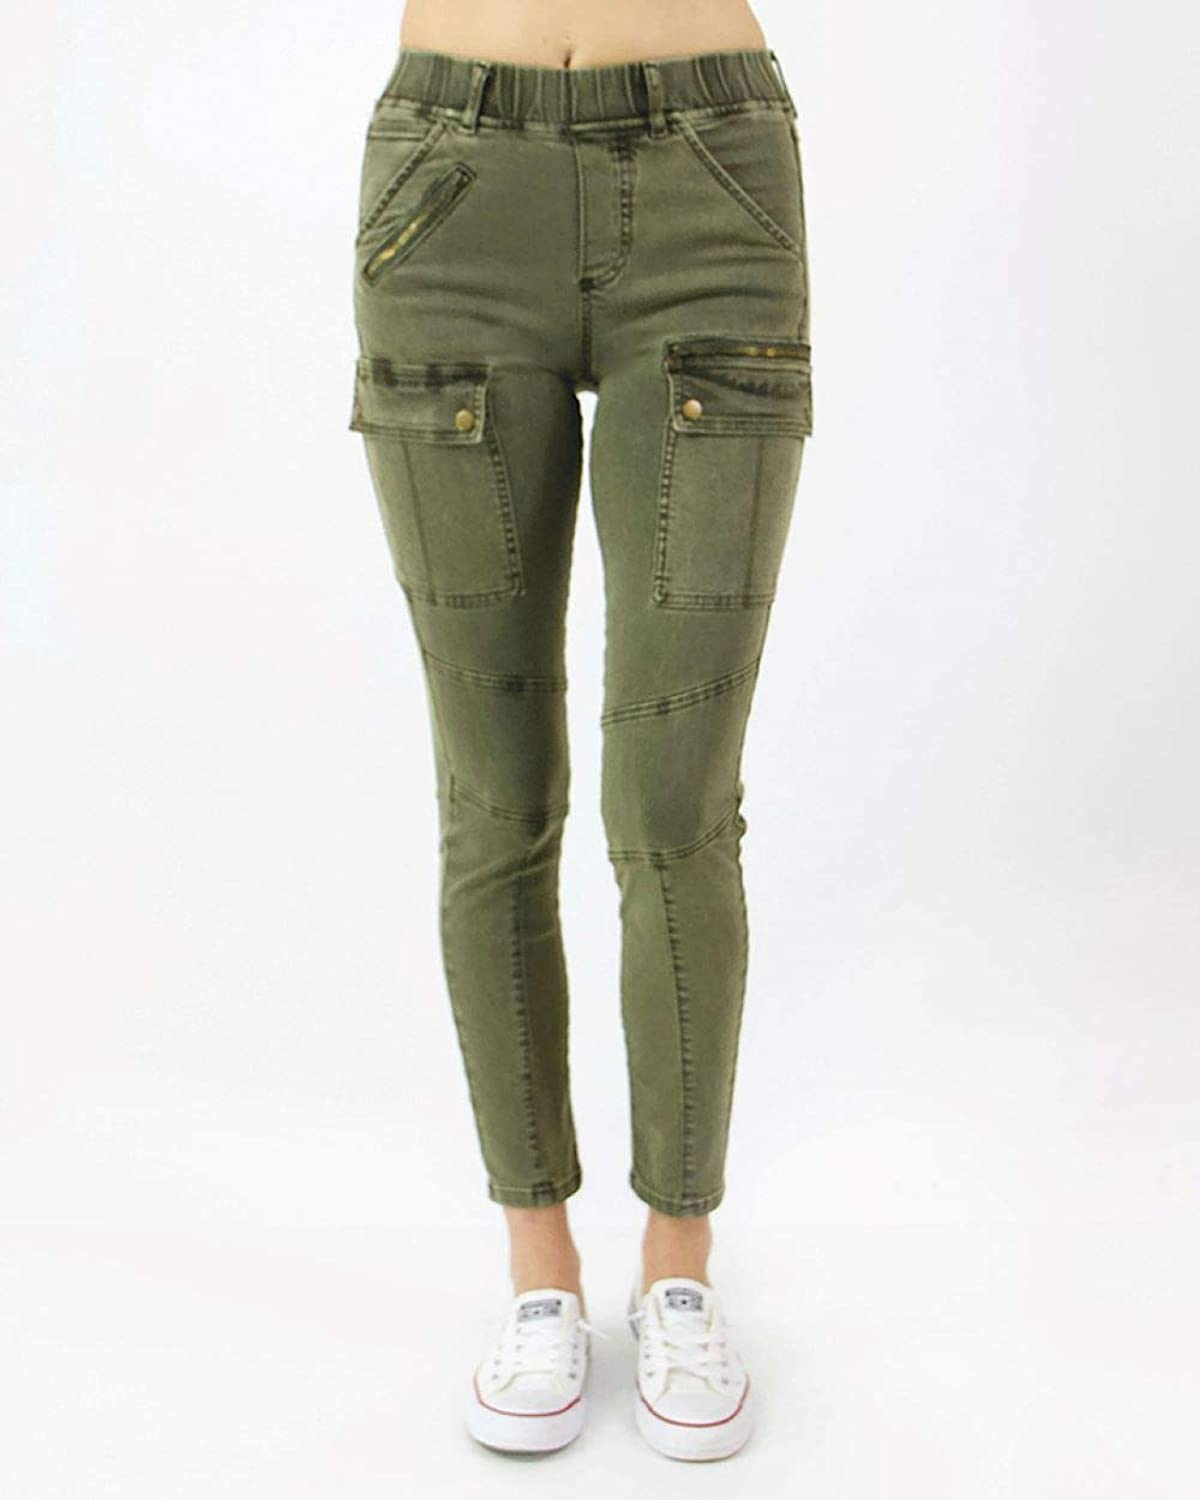 Grace and Lace Ladies Skinny Stretch Jeans Cargo Jeggings Women Olive Green